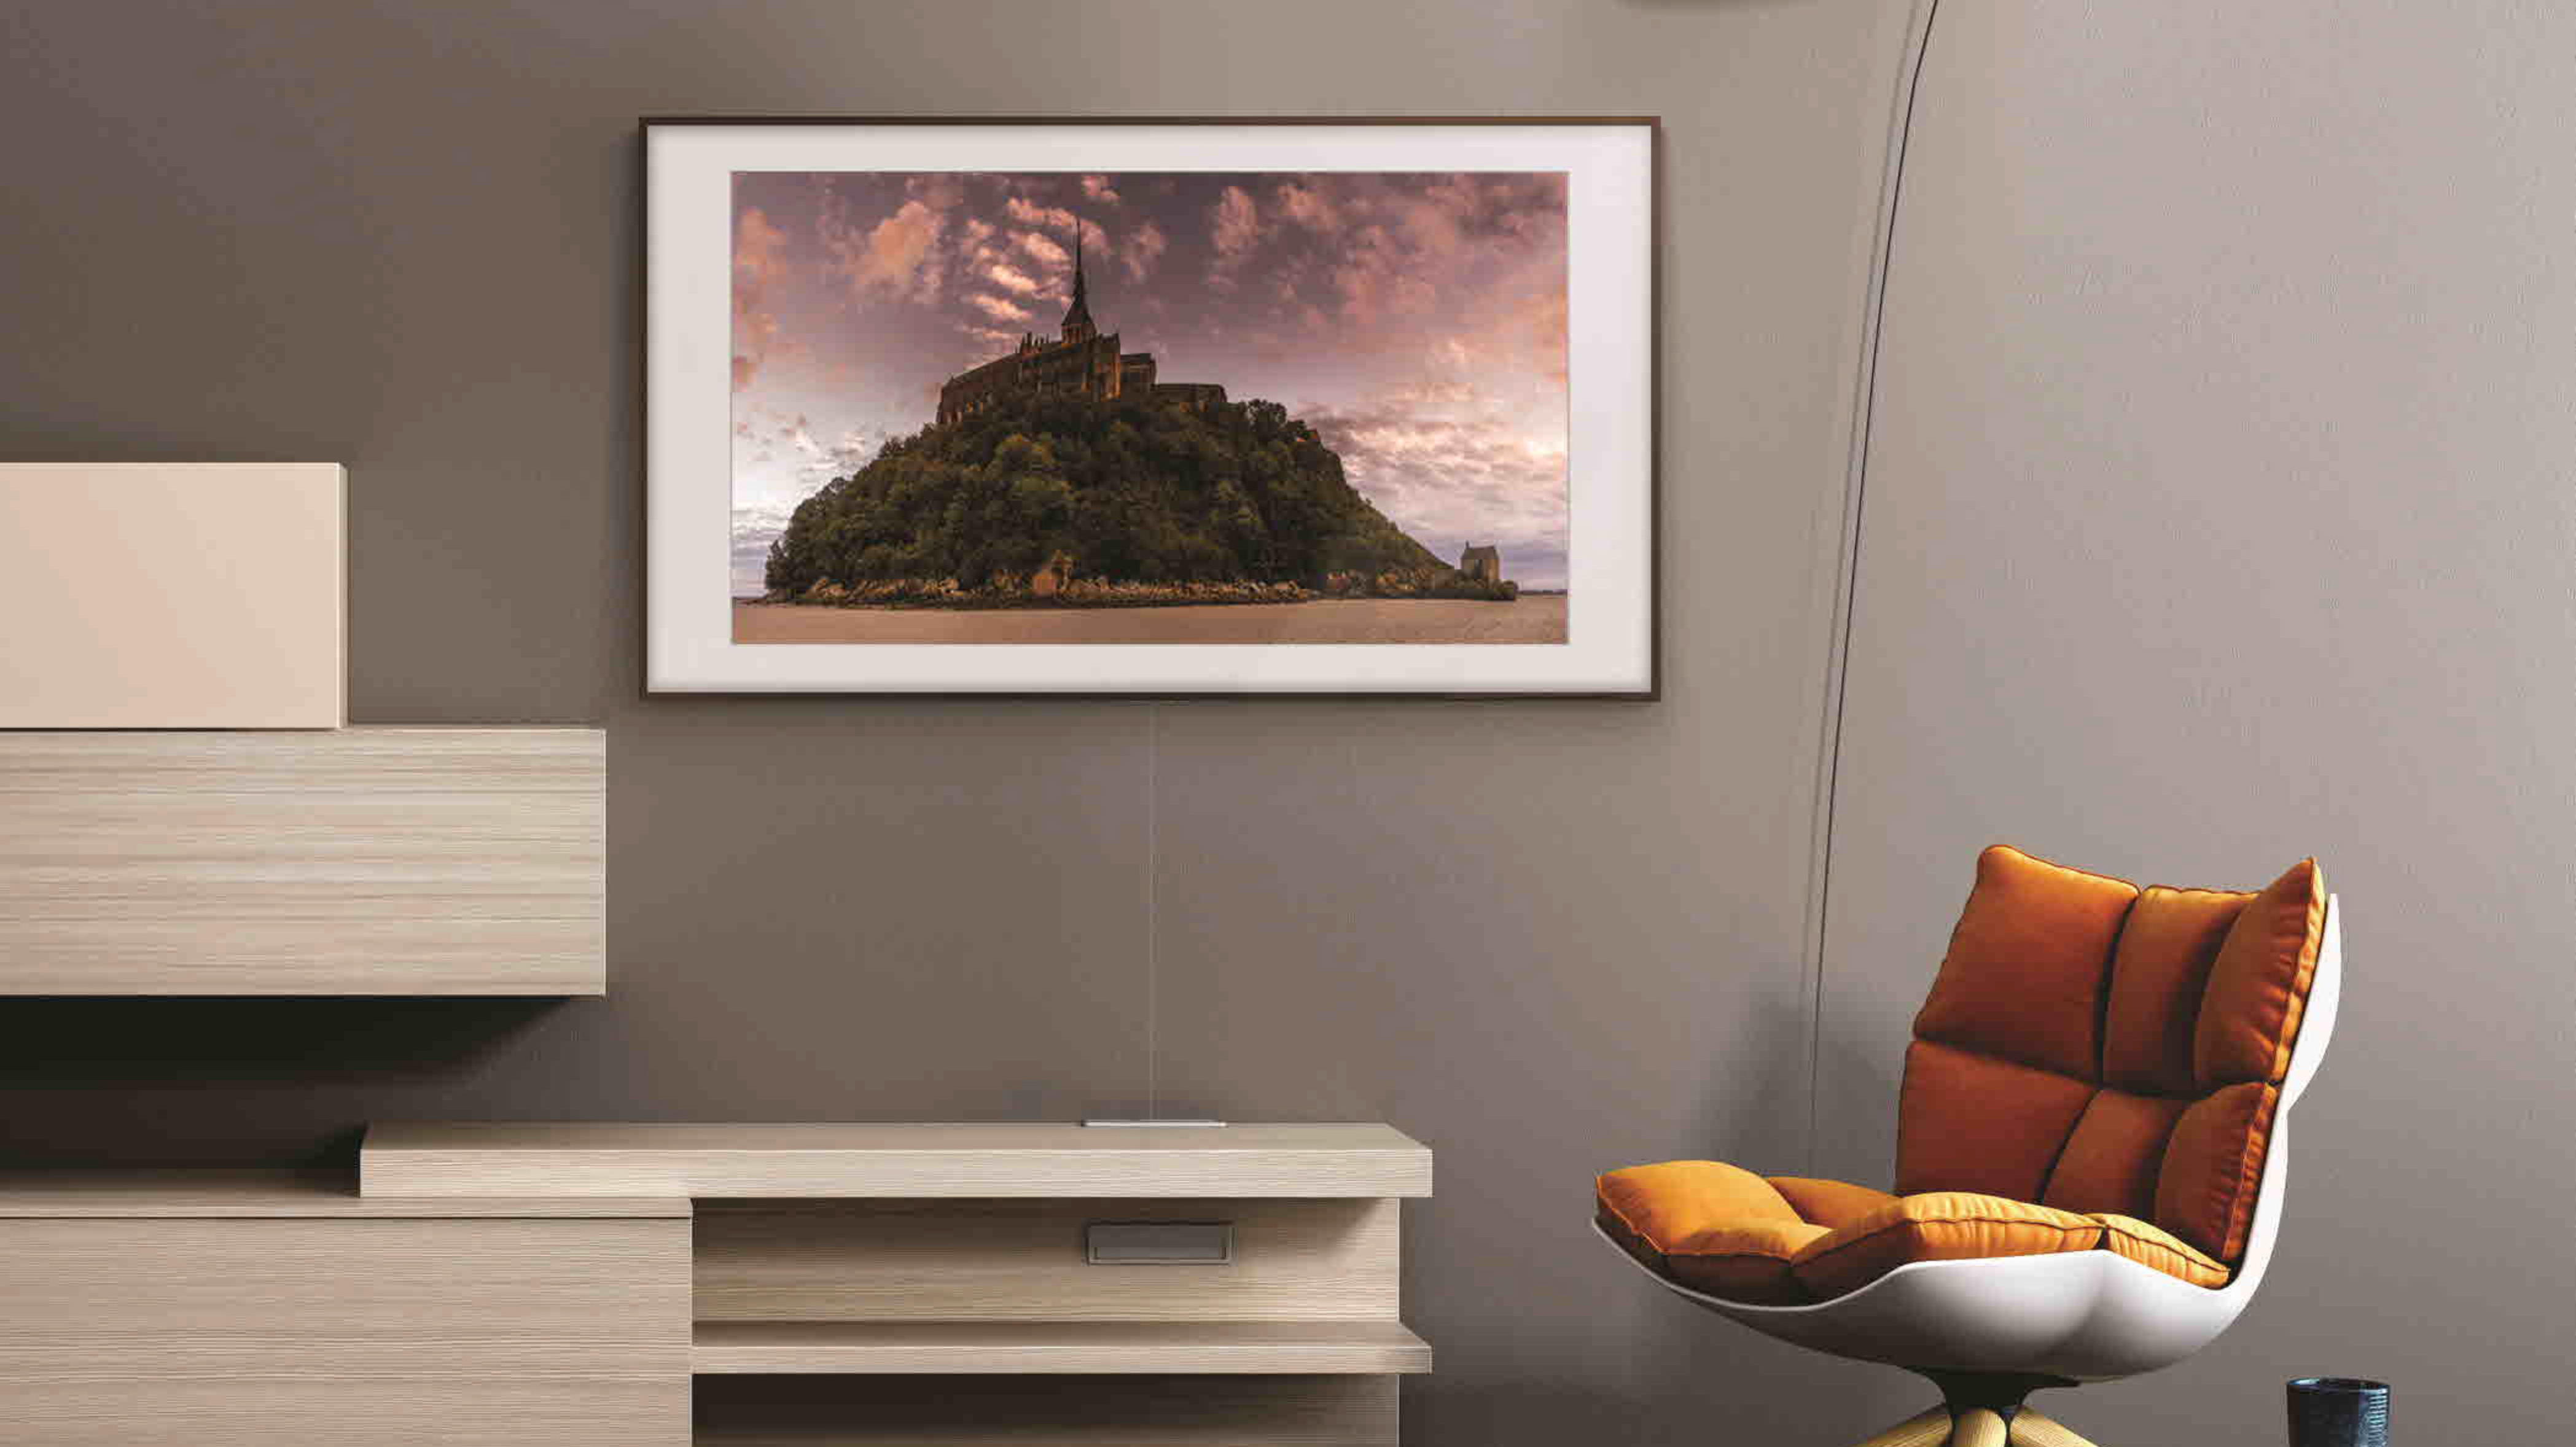 Over 800 Artworks Coming To Samsung S New Picture Frame Television Techradar